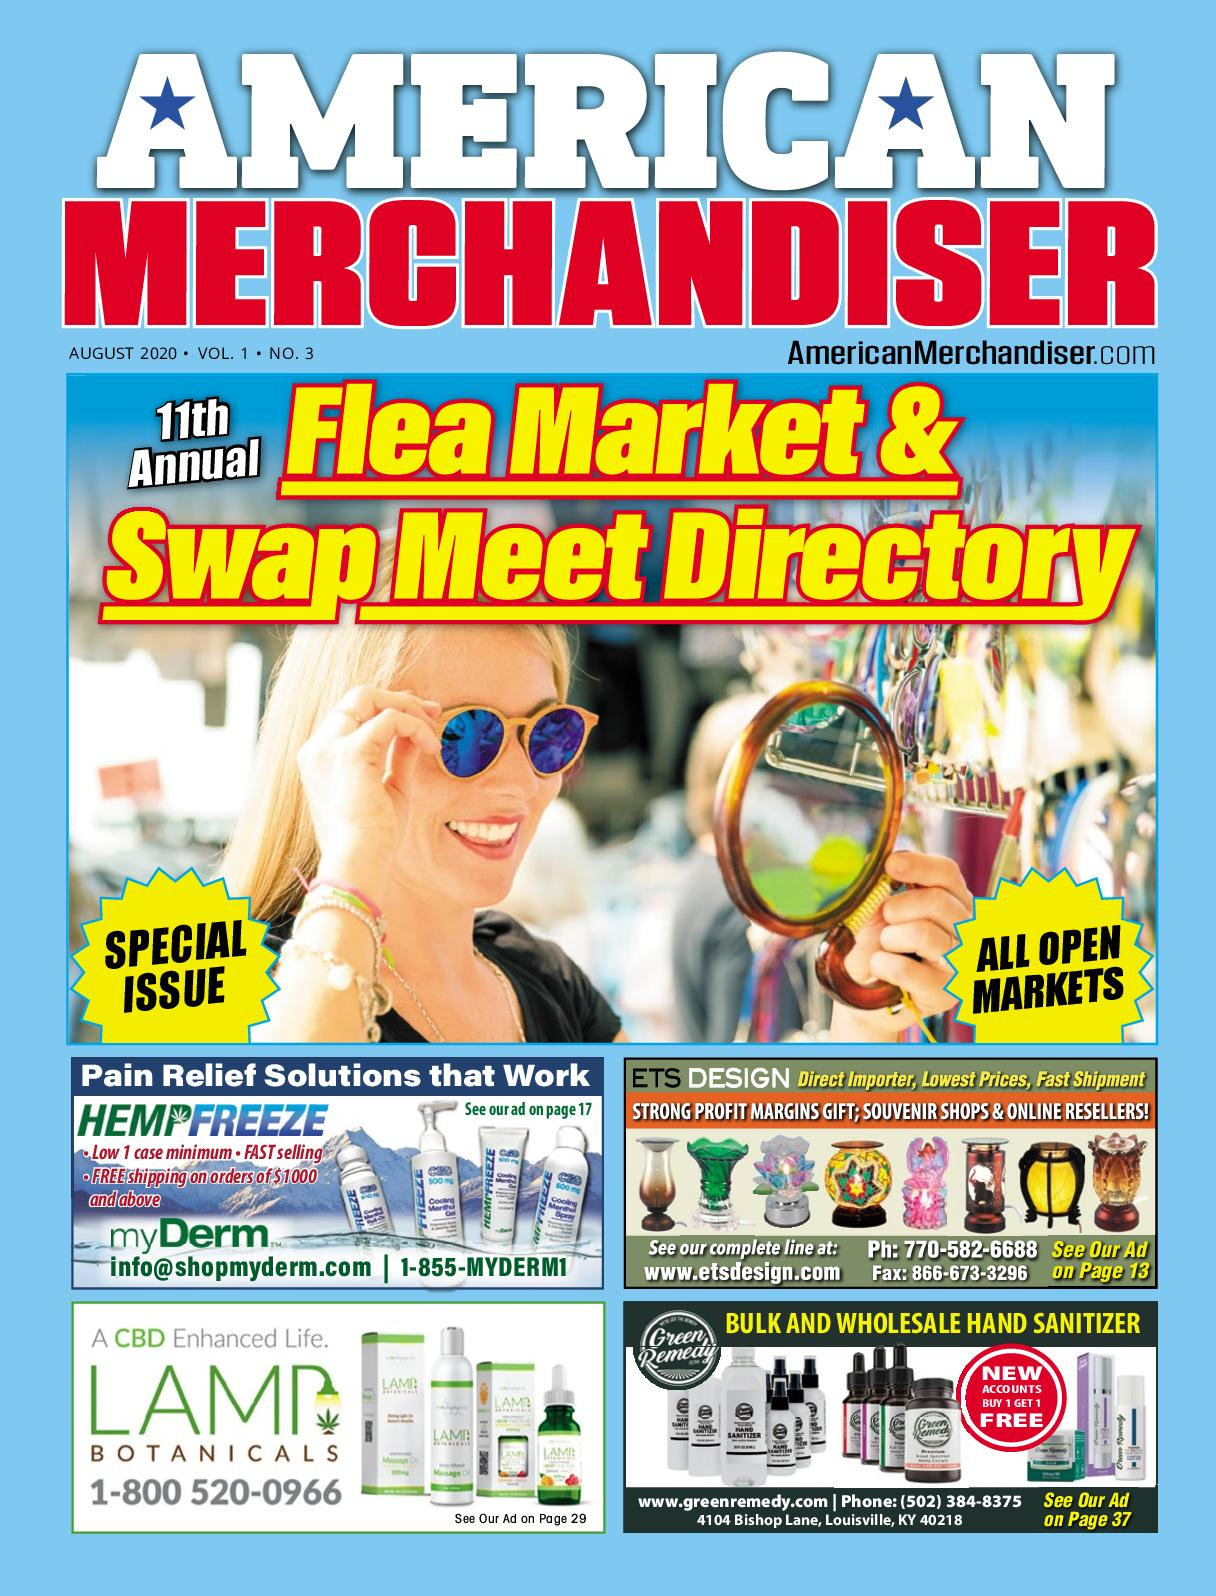 Calaméo - American Merchandiser August 2020 in Ripley Ms Flea Market Schedule 2021